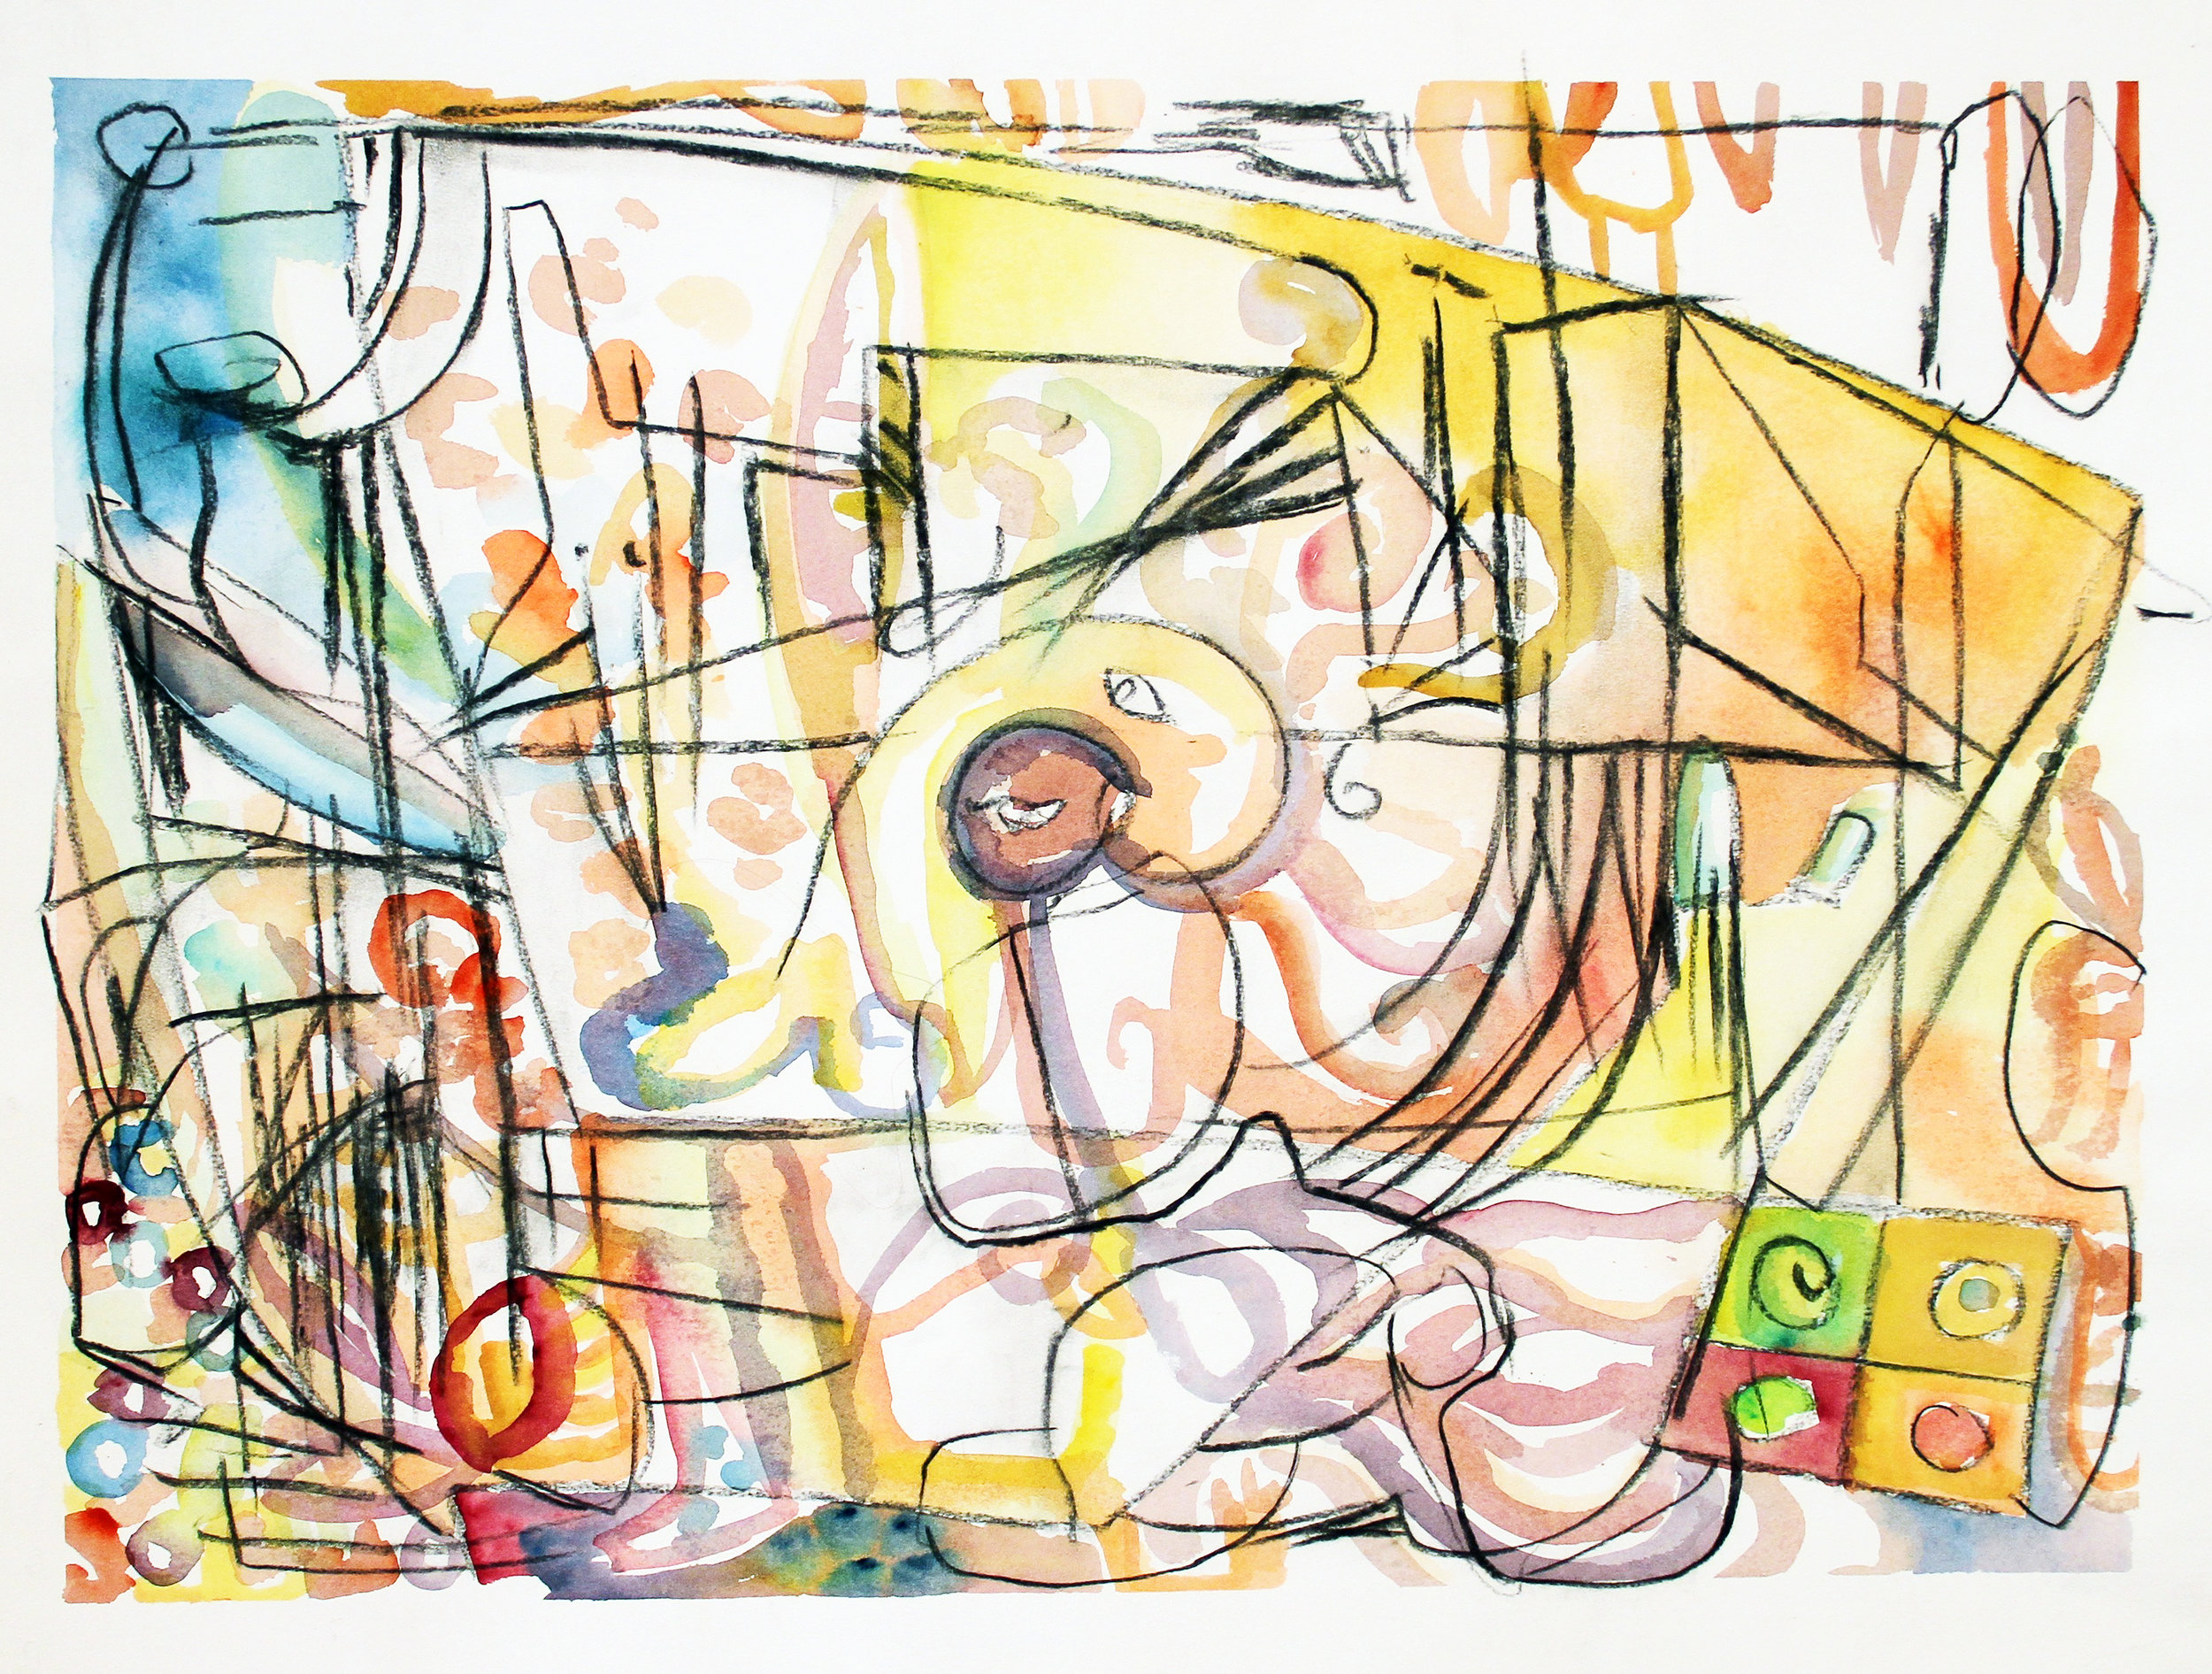 THE GAME IS ON  Mixed Media on Paper 23 x 20 inches (58 x 76 cm)